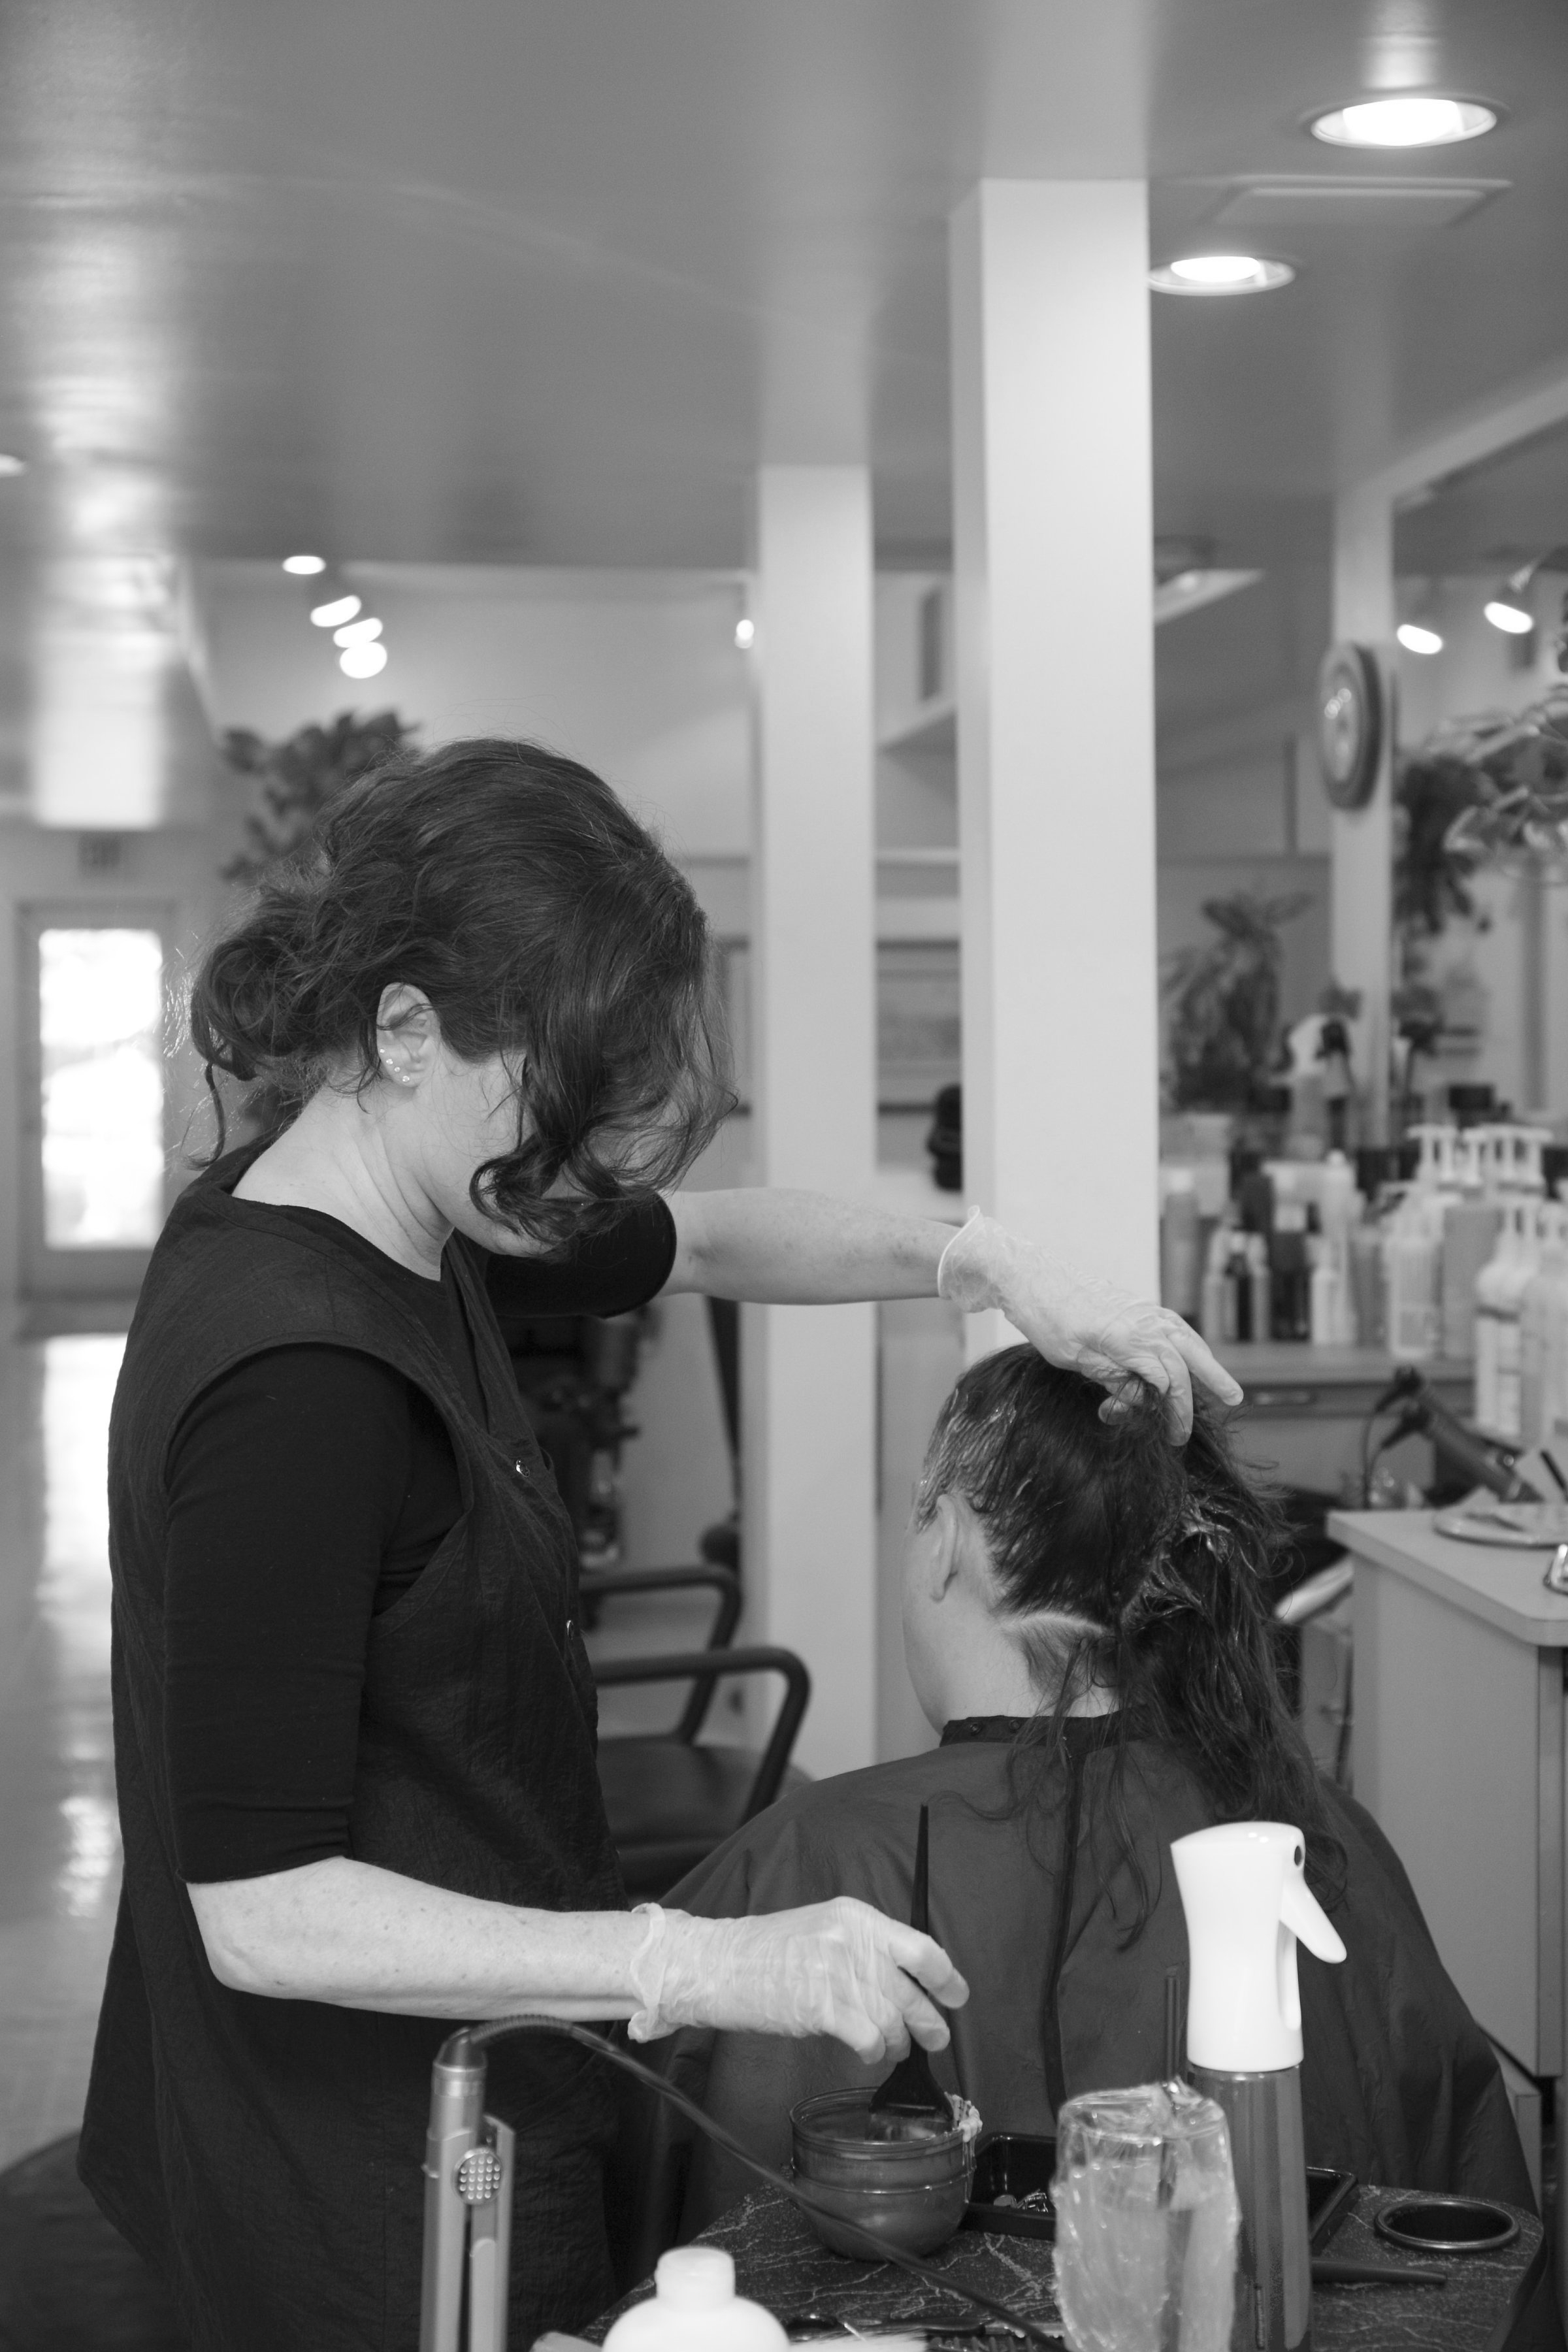 List of salon services - View all of our service offerings